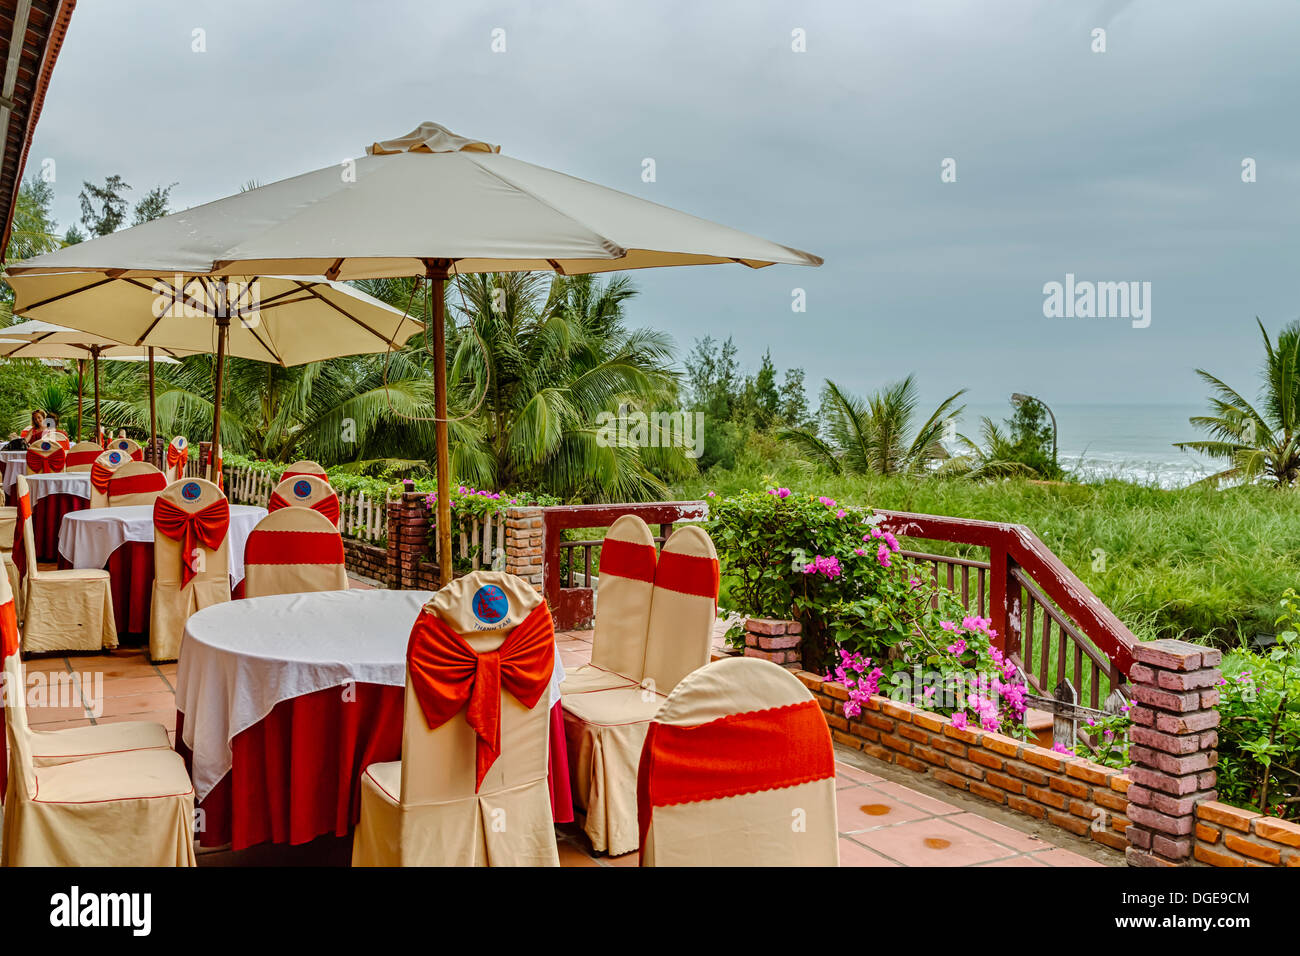 Table setting at an outdoor restaurant at the Thanh Tam Seaside Resort near Hue, Vietnam, Asia. - Stock Image